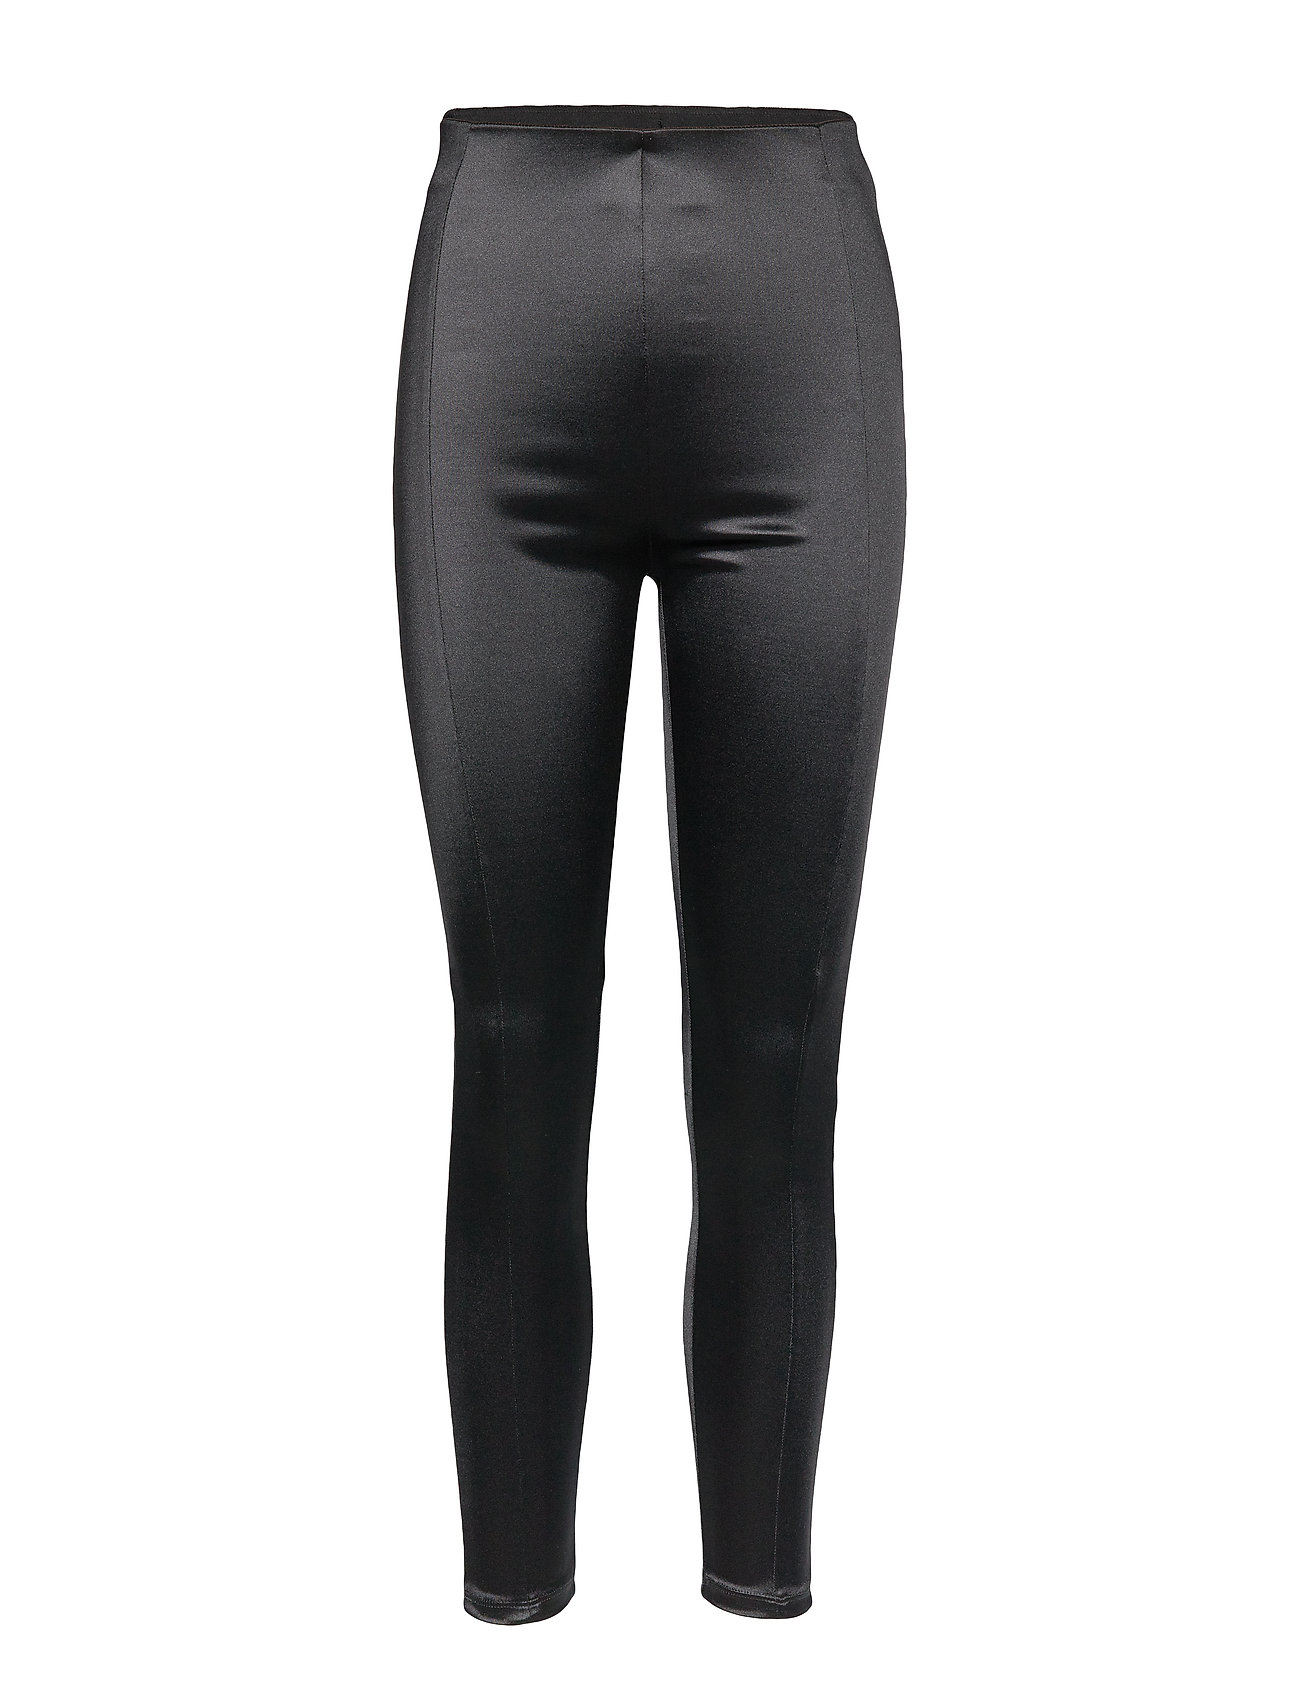 Gina Tricot Jemima highwaist leggings - BLACK